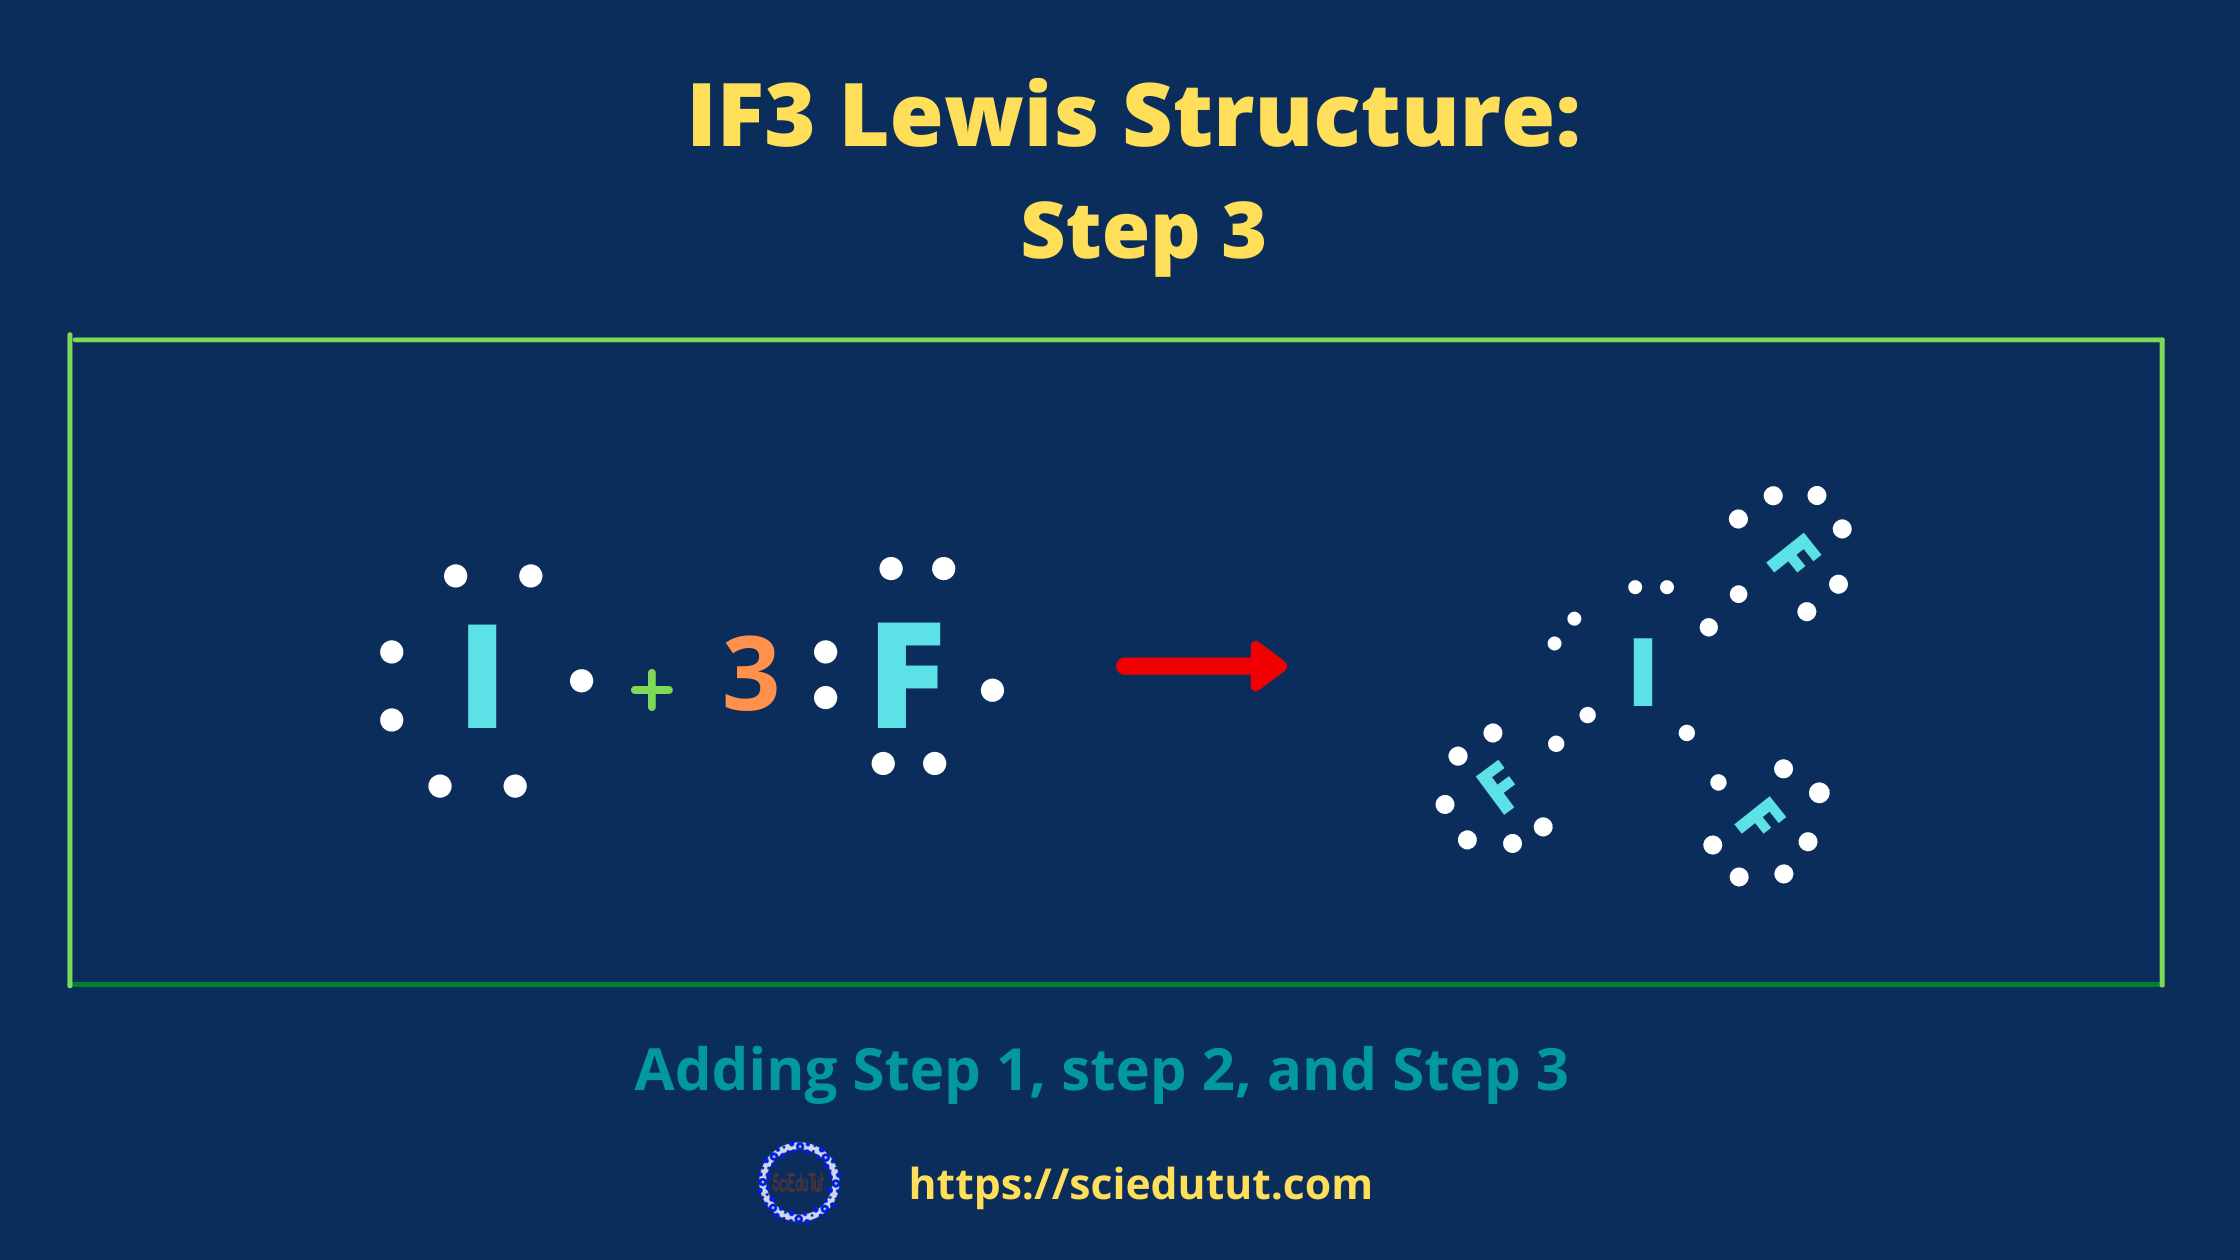 How to draw IF3 Lewis Structure?